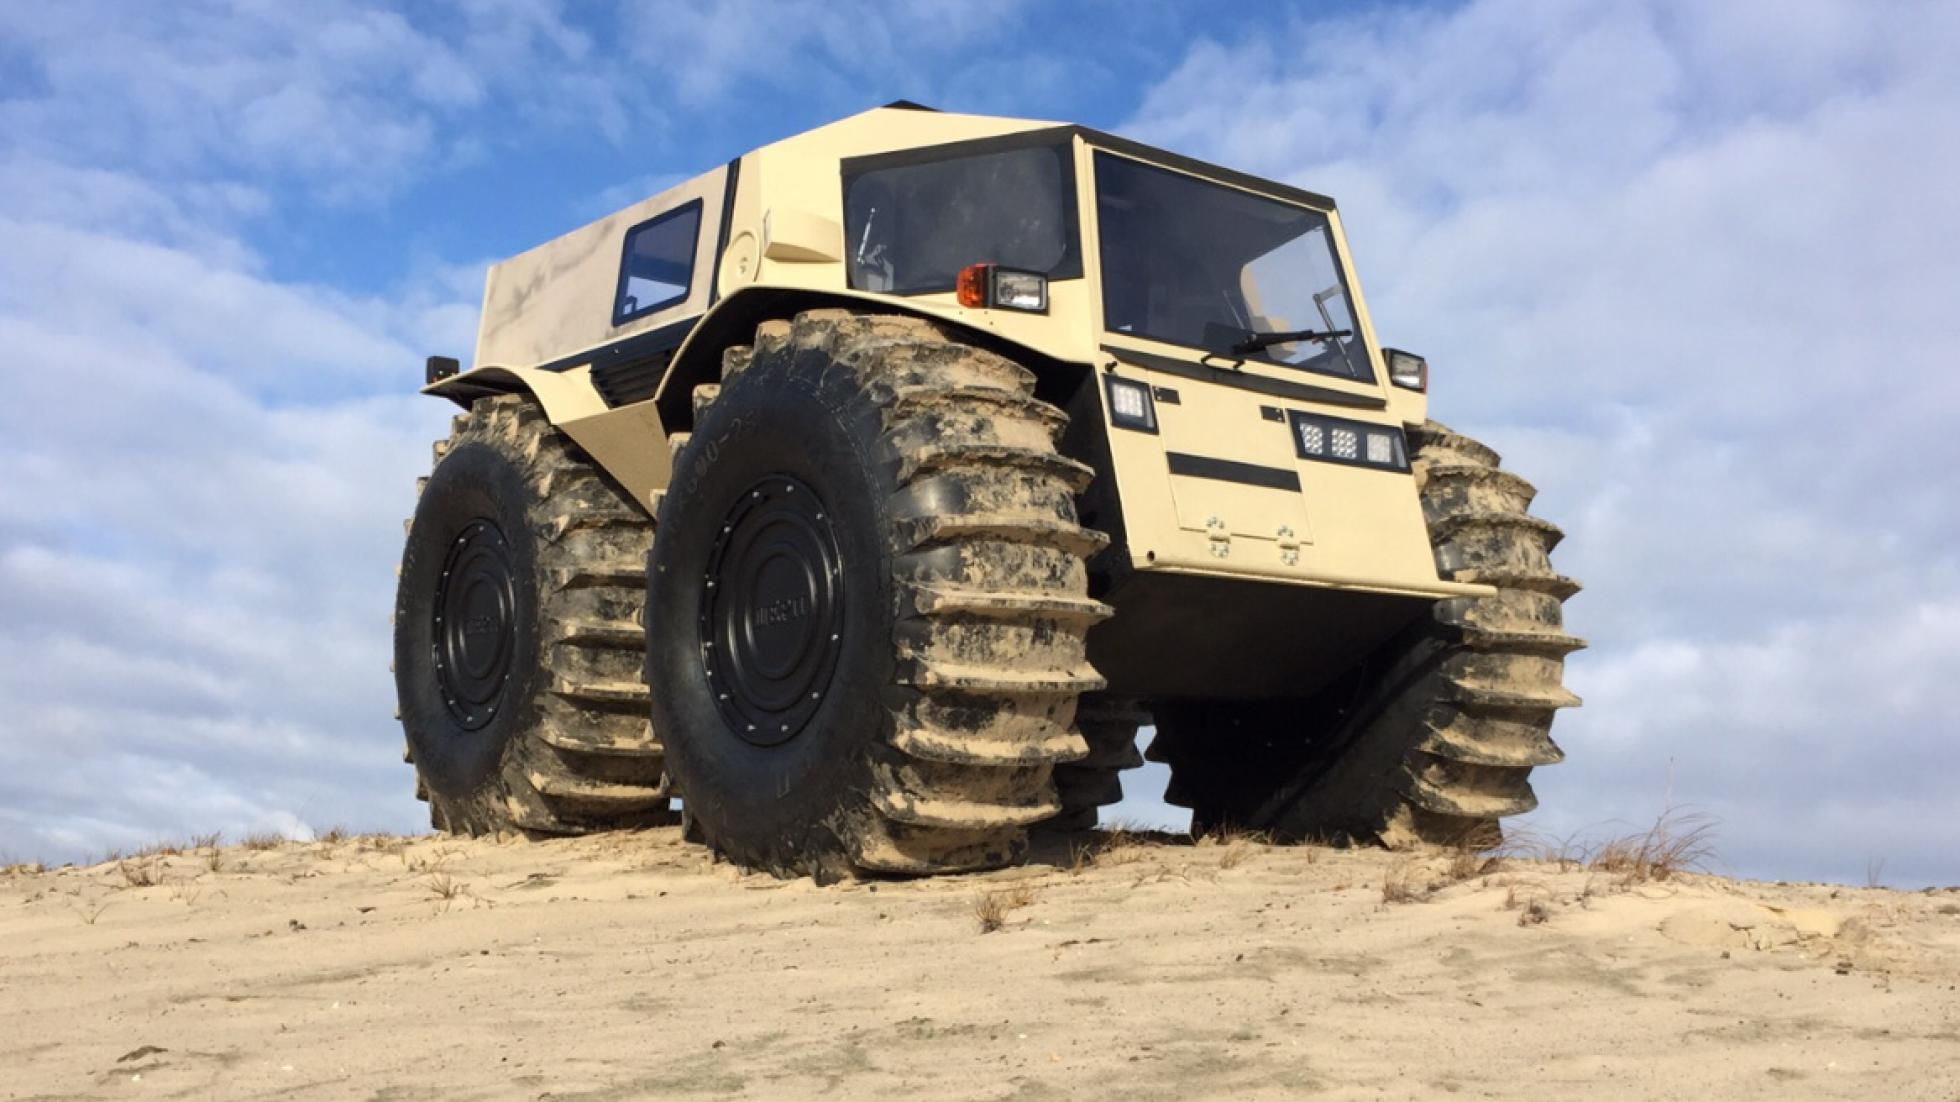 Russian Off Road Vehicles That You Haven't Heard Of - sherp